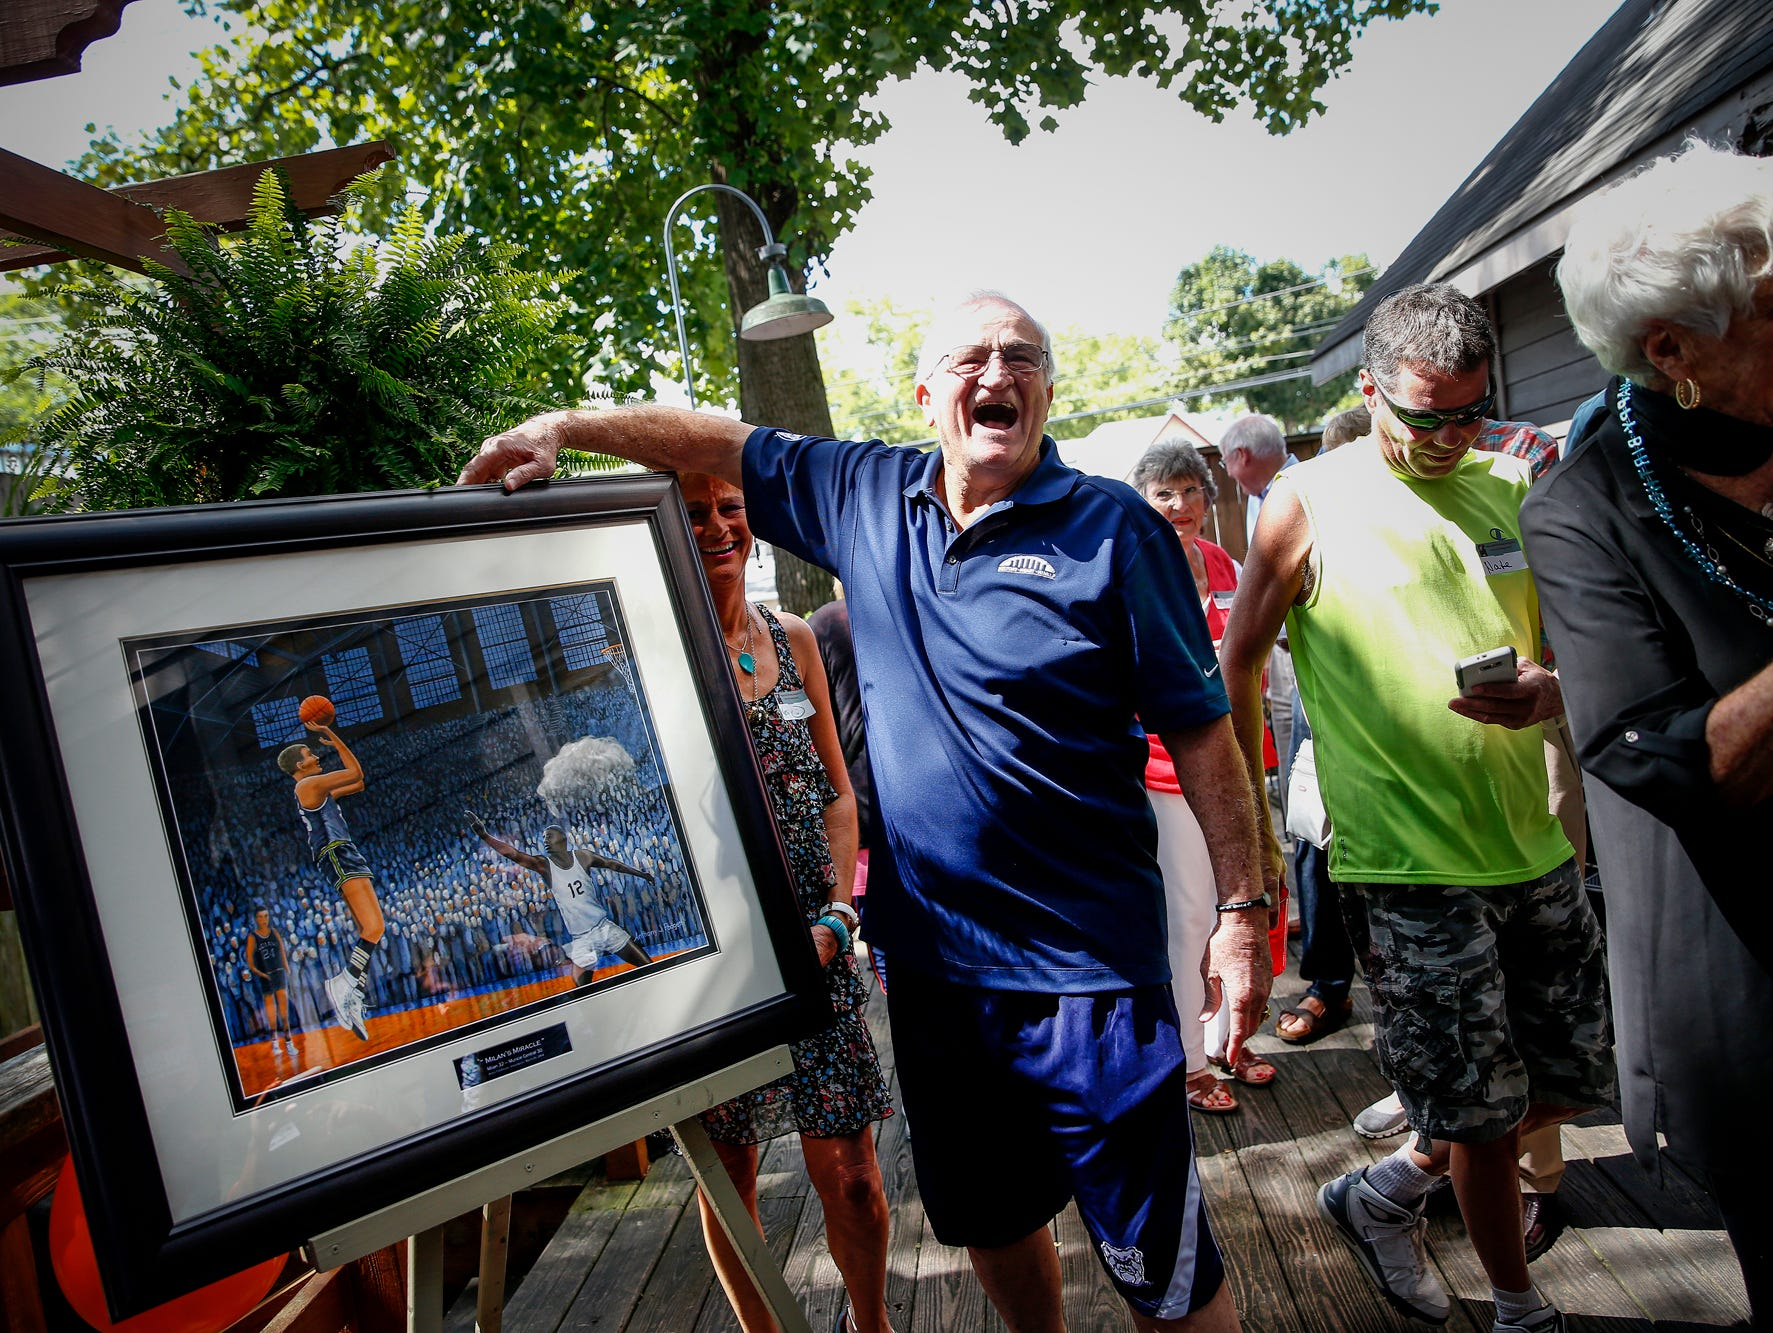 Bobby Plump shows his excitement after a commissioned painting by Anthony Padgett was unveiled during Plump's 80th birthday party on Sept. 11, 2016.